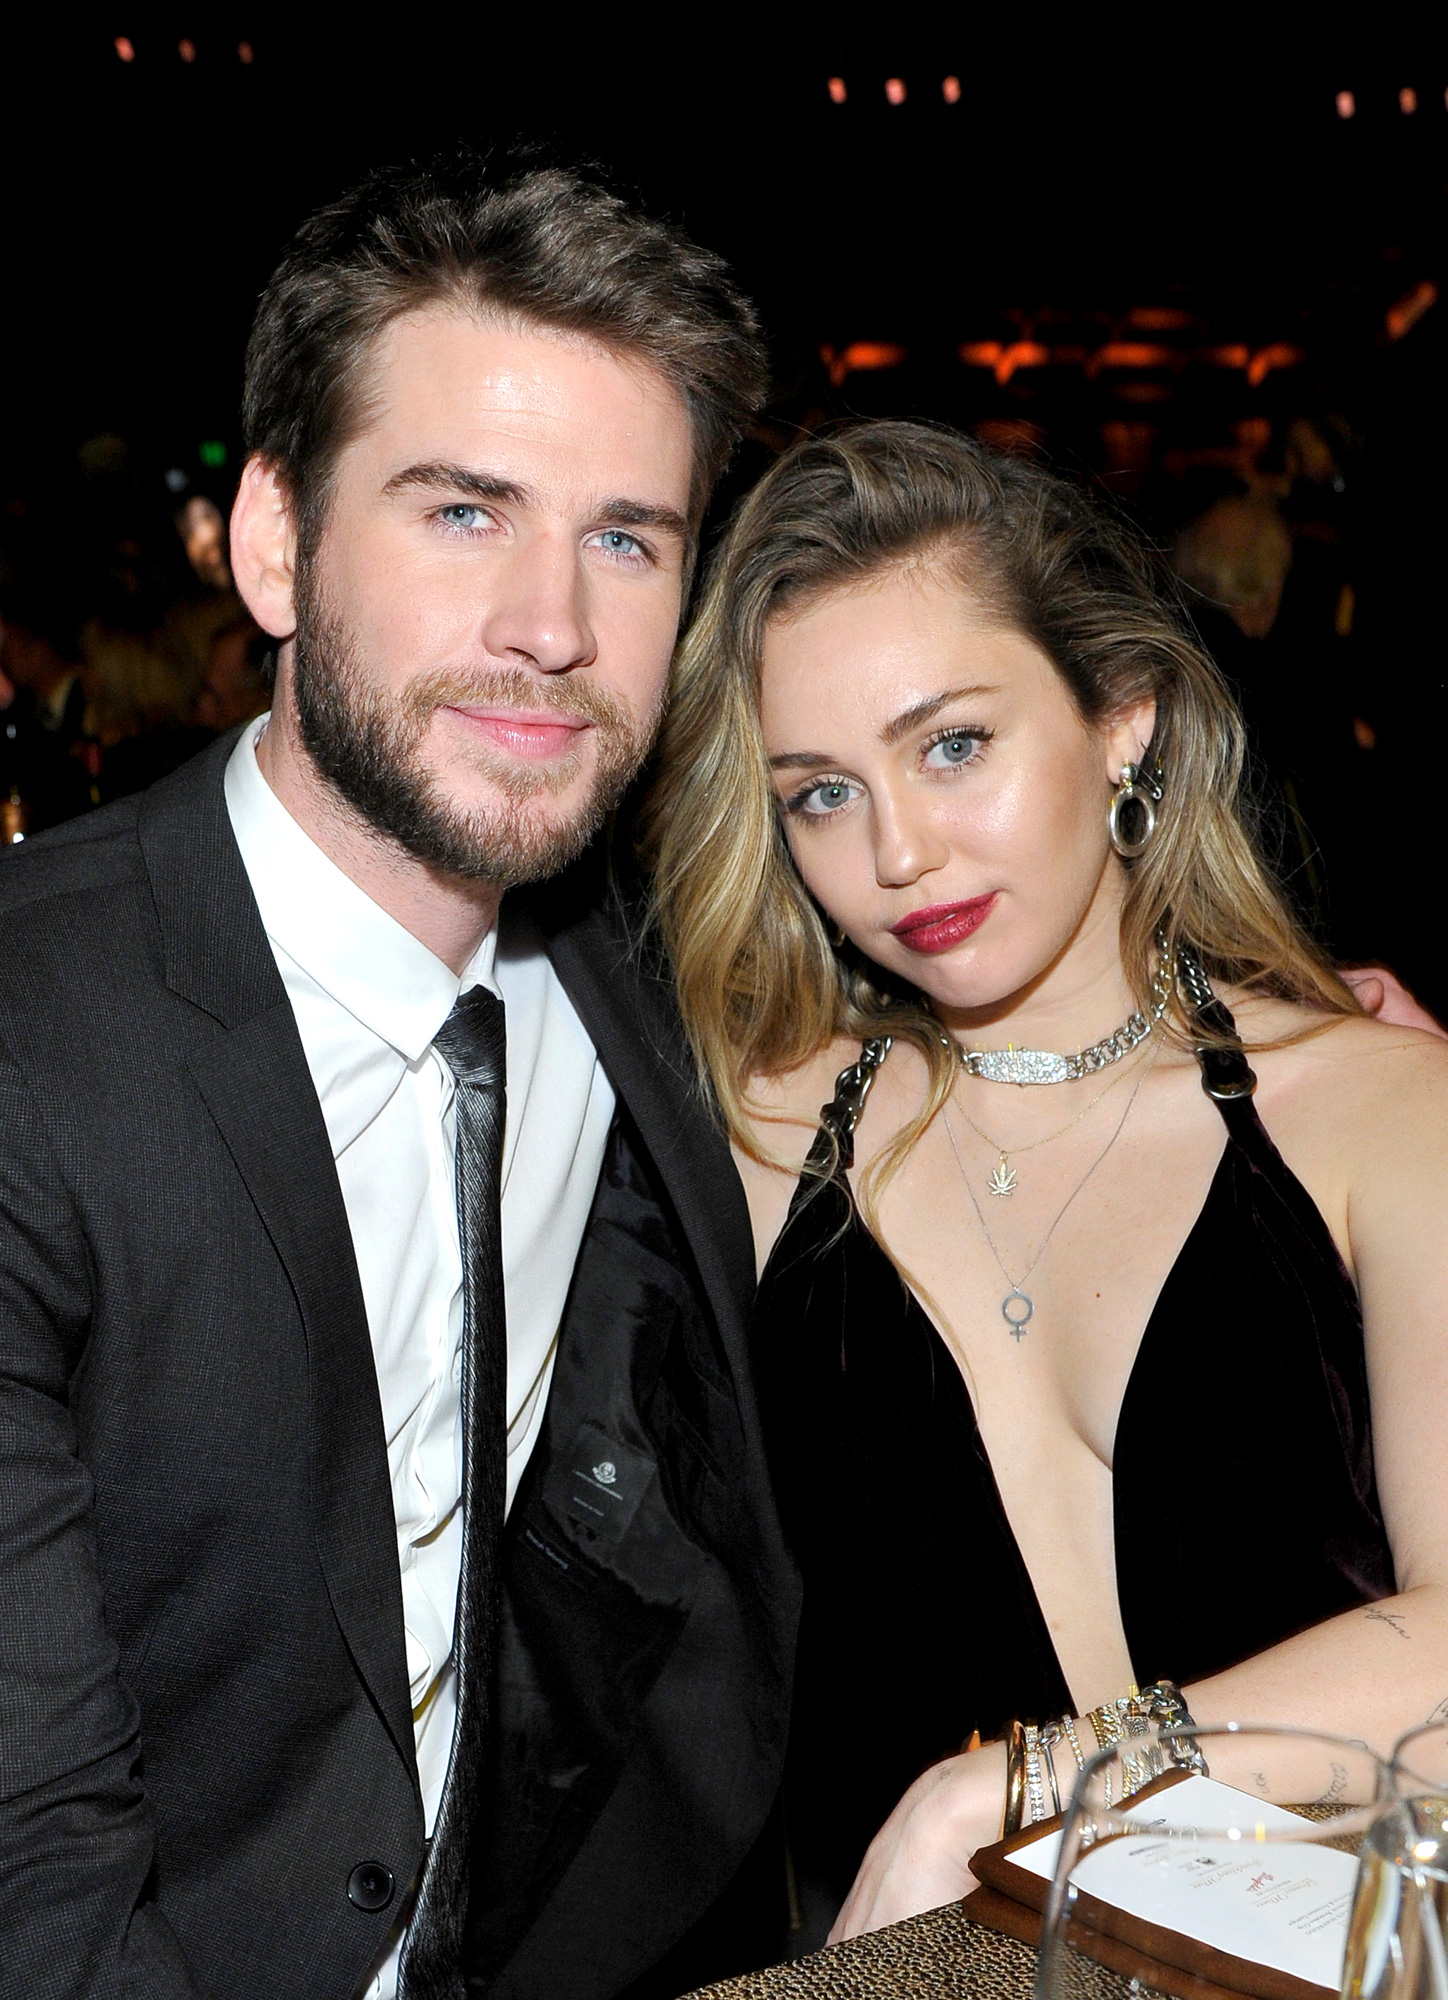 Hunger Games star, Liam Hemsworth and Miley Cyrus. The two fell in love on the set of the Nicholas Sparks movie, The Last Song. They later got engaged in May 2012 but called it quit in September 2013.